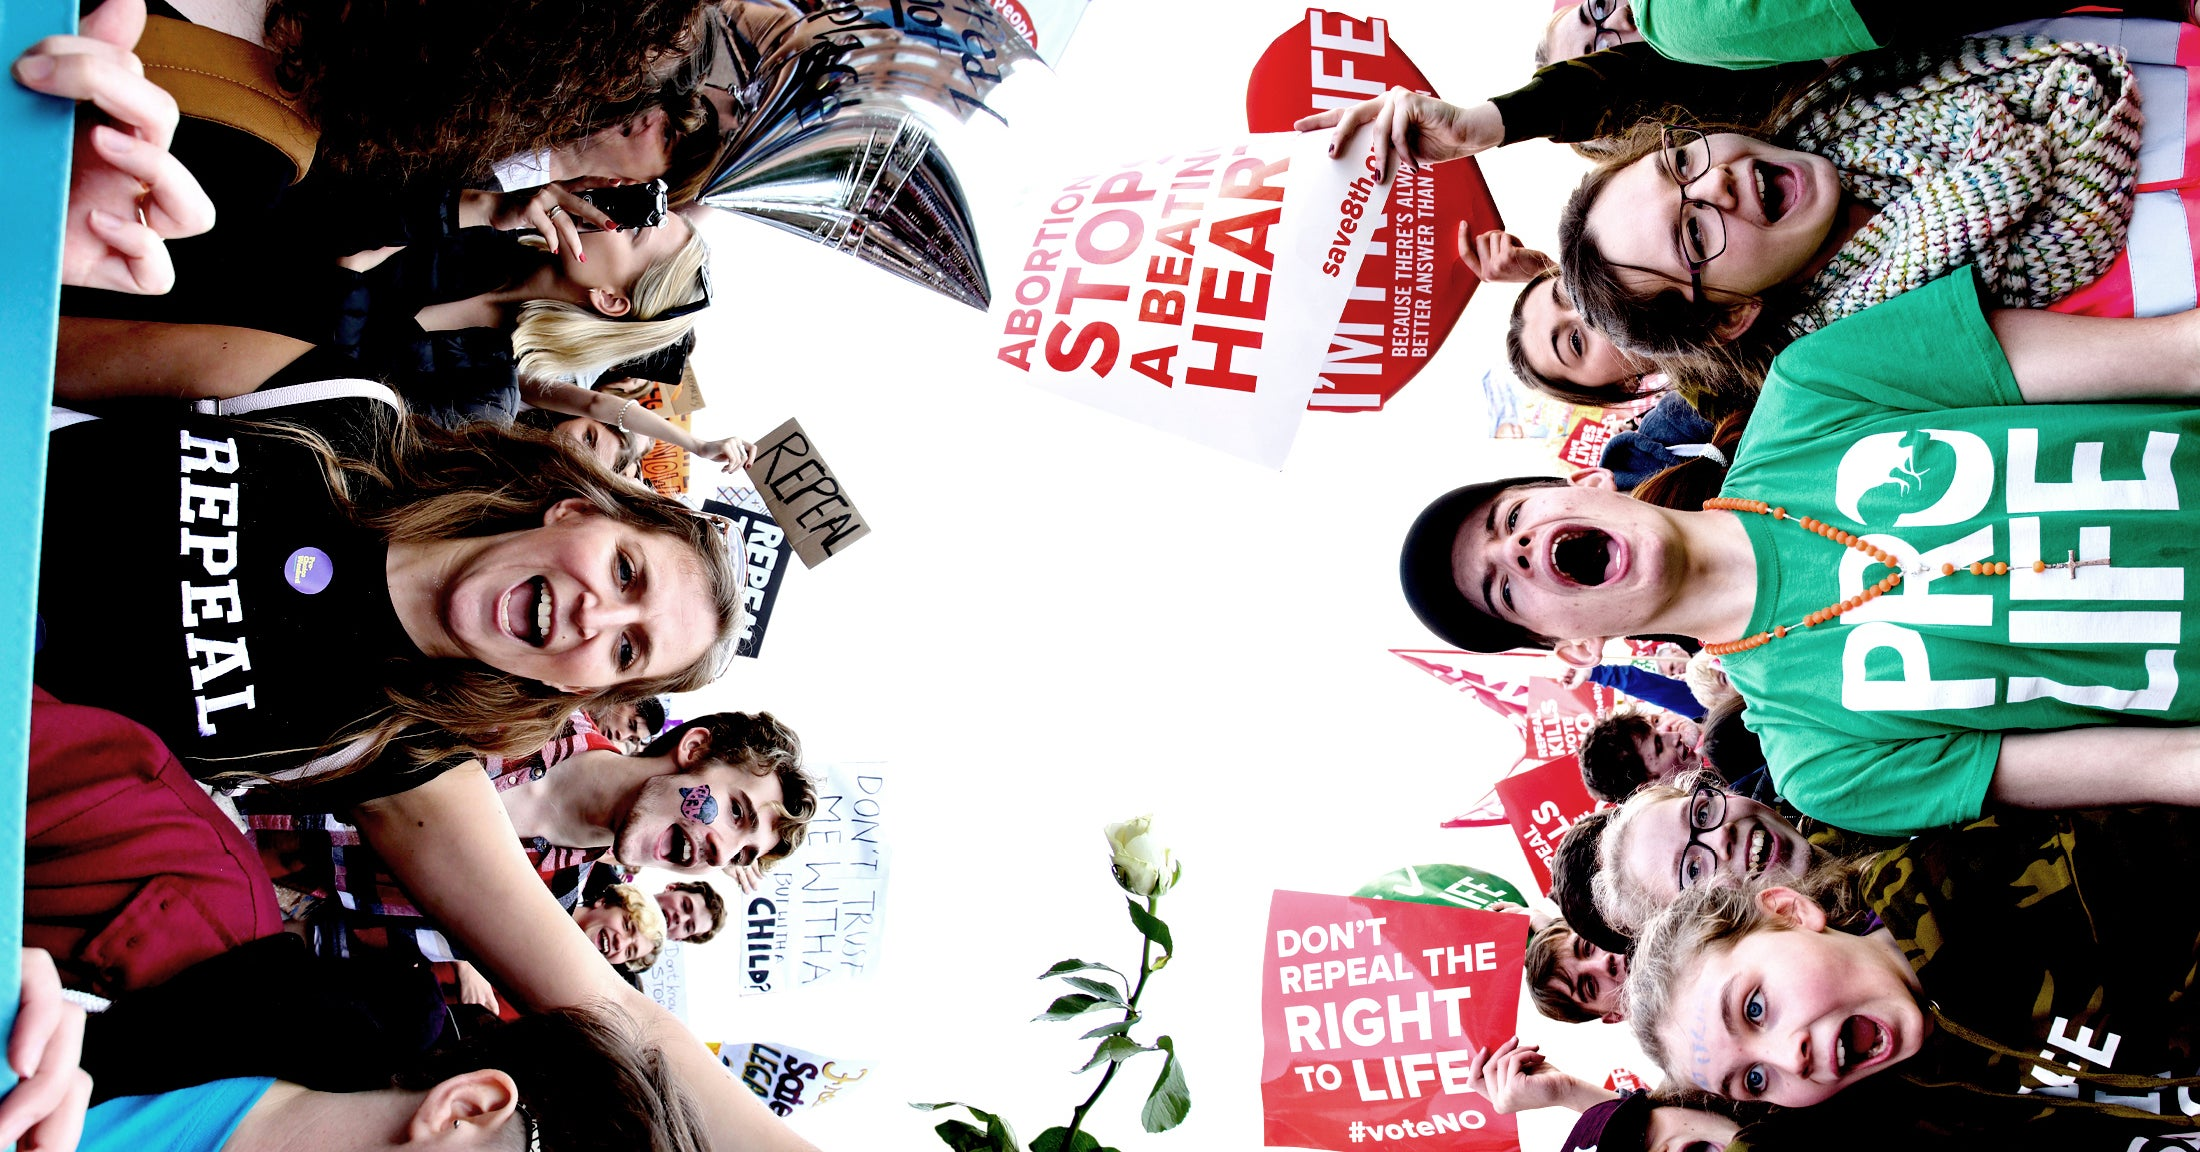 """Ireland's Anti-Abortion Activists Claim They're Fighting A """"Rebellion"""" – But Will They Win?"""